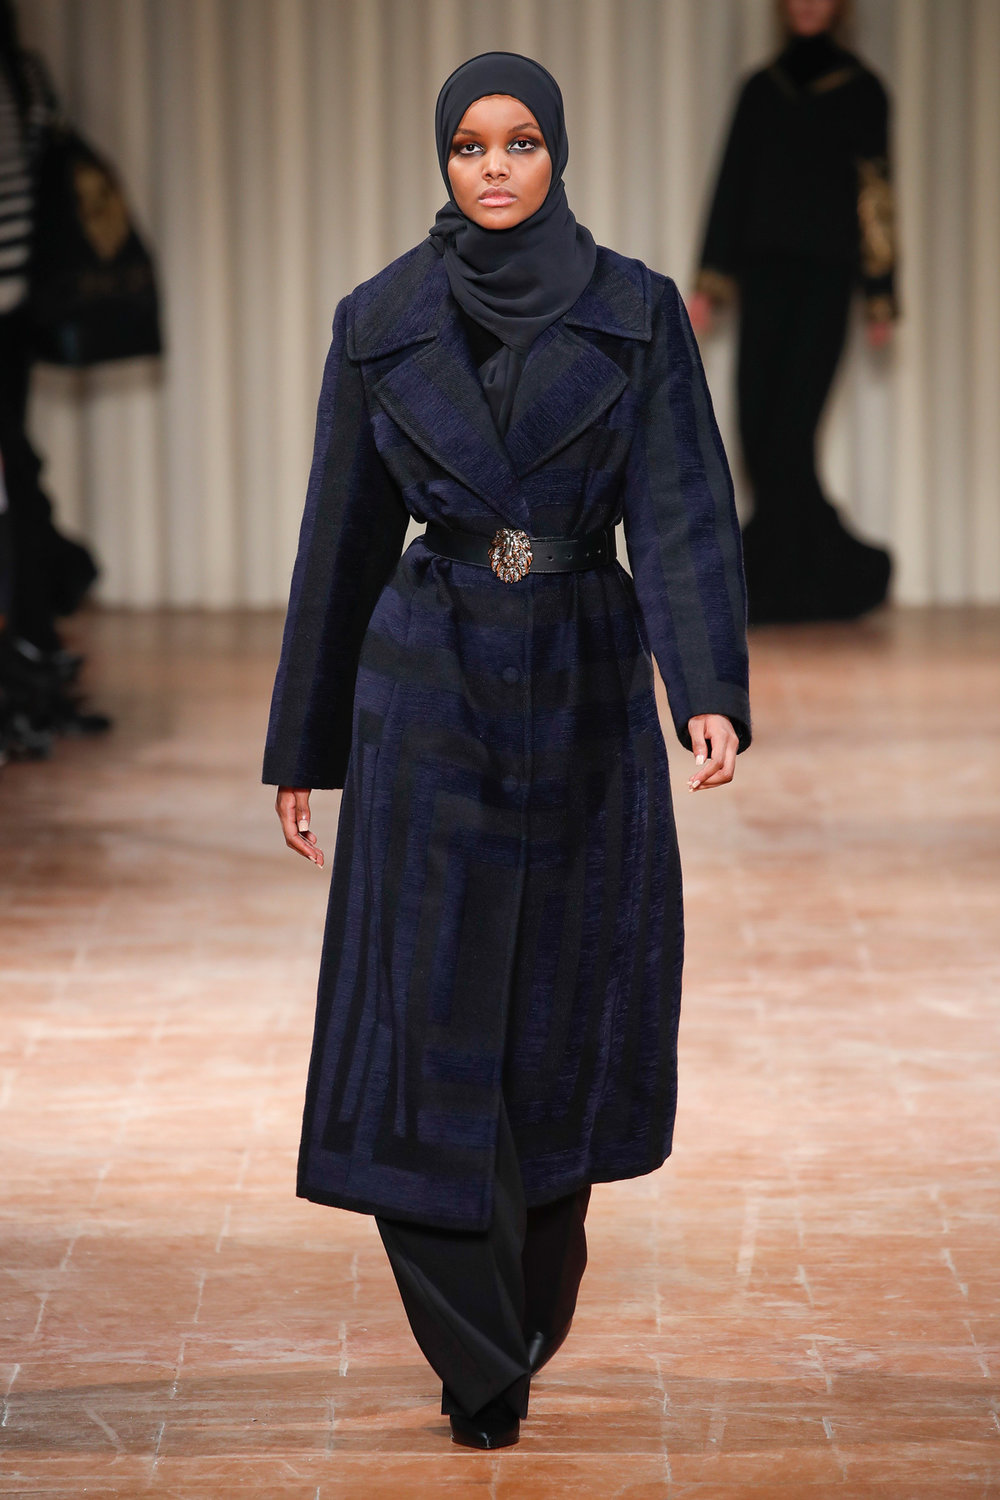 halima-aden-the-hijabi-model-of-the-moment-brings-much-needed-diversity-to-milan-body-image-1487861426.jpg